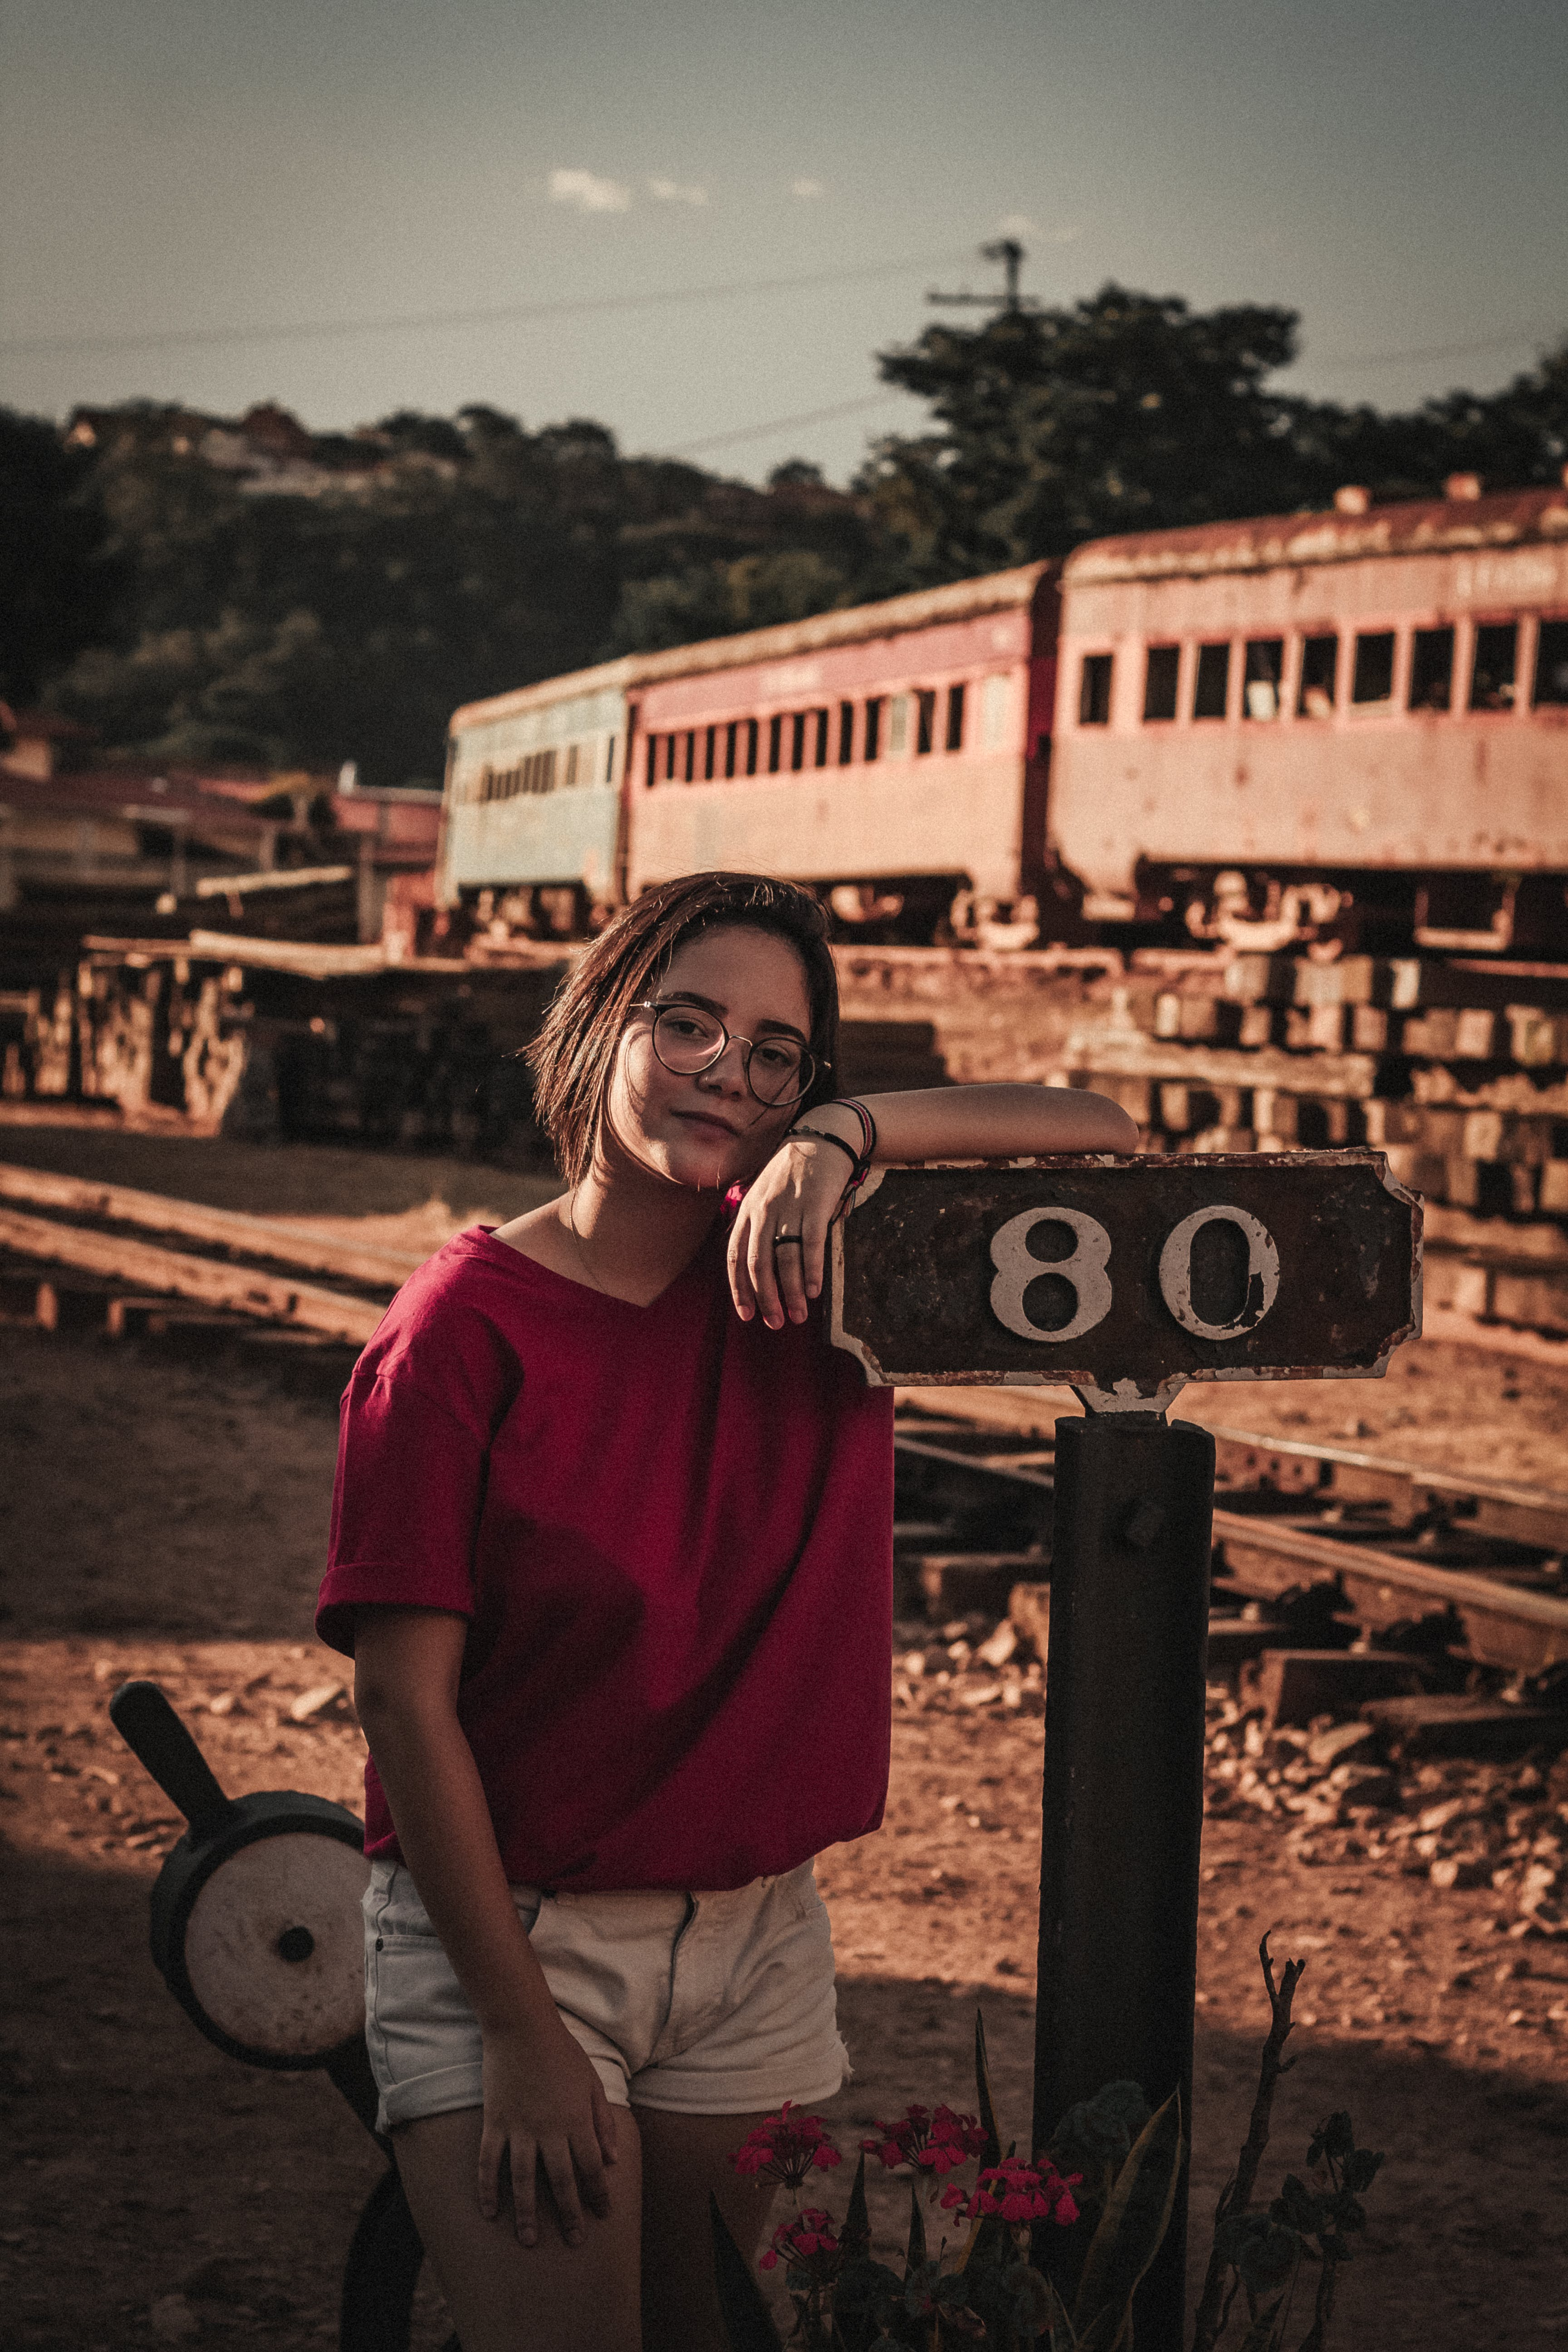 Standing Woman Wearing Red T-shirt Leaning on Brown Wooden 80 Post